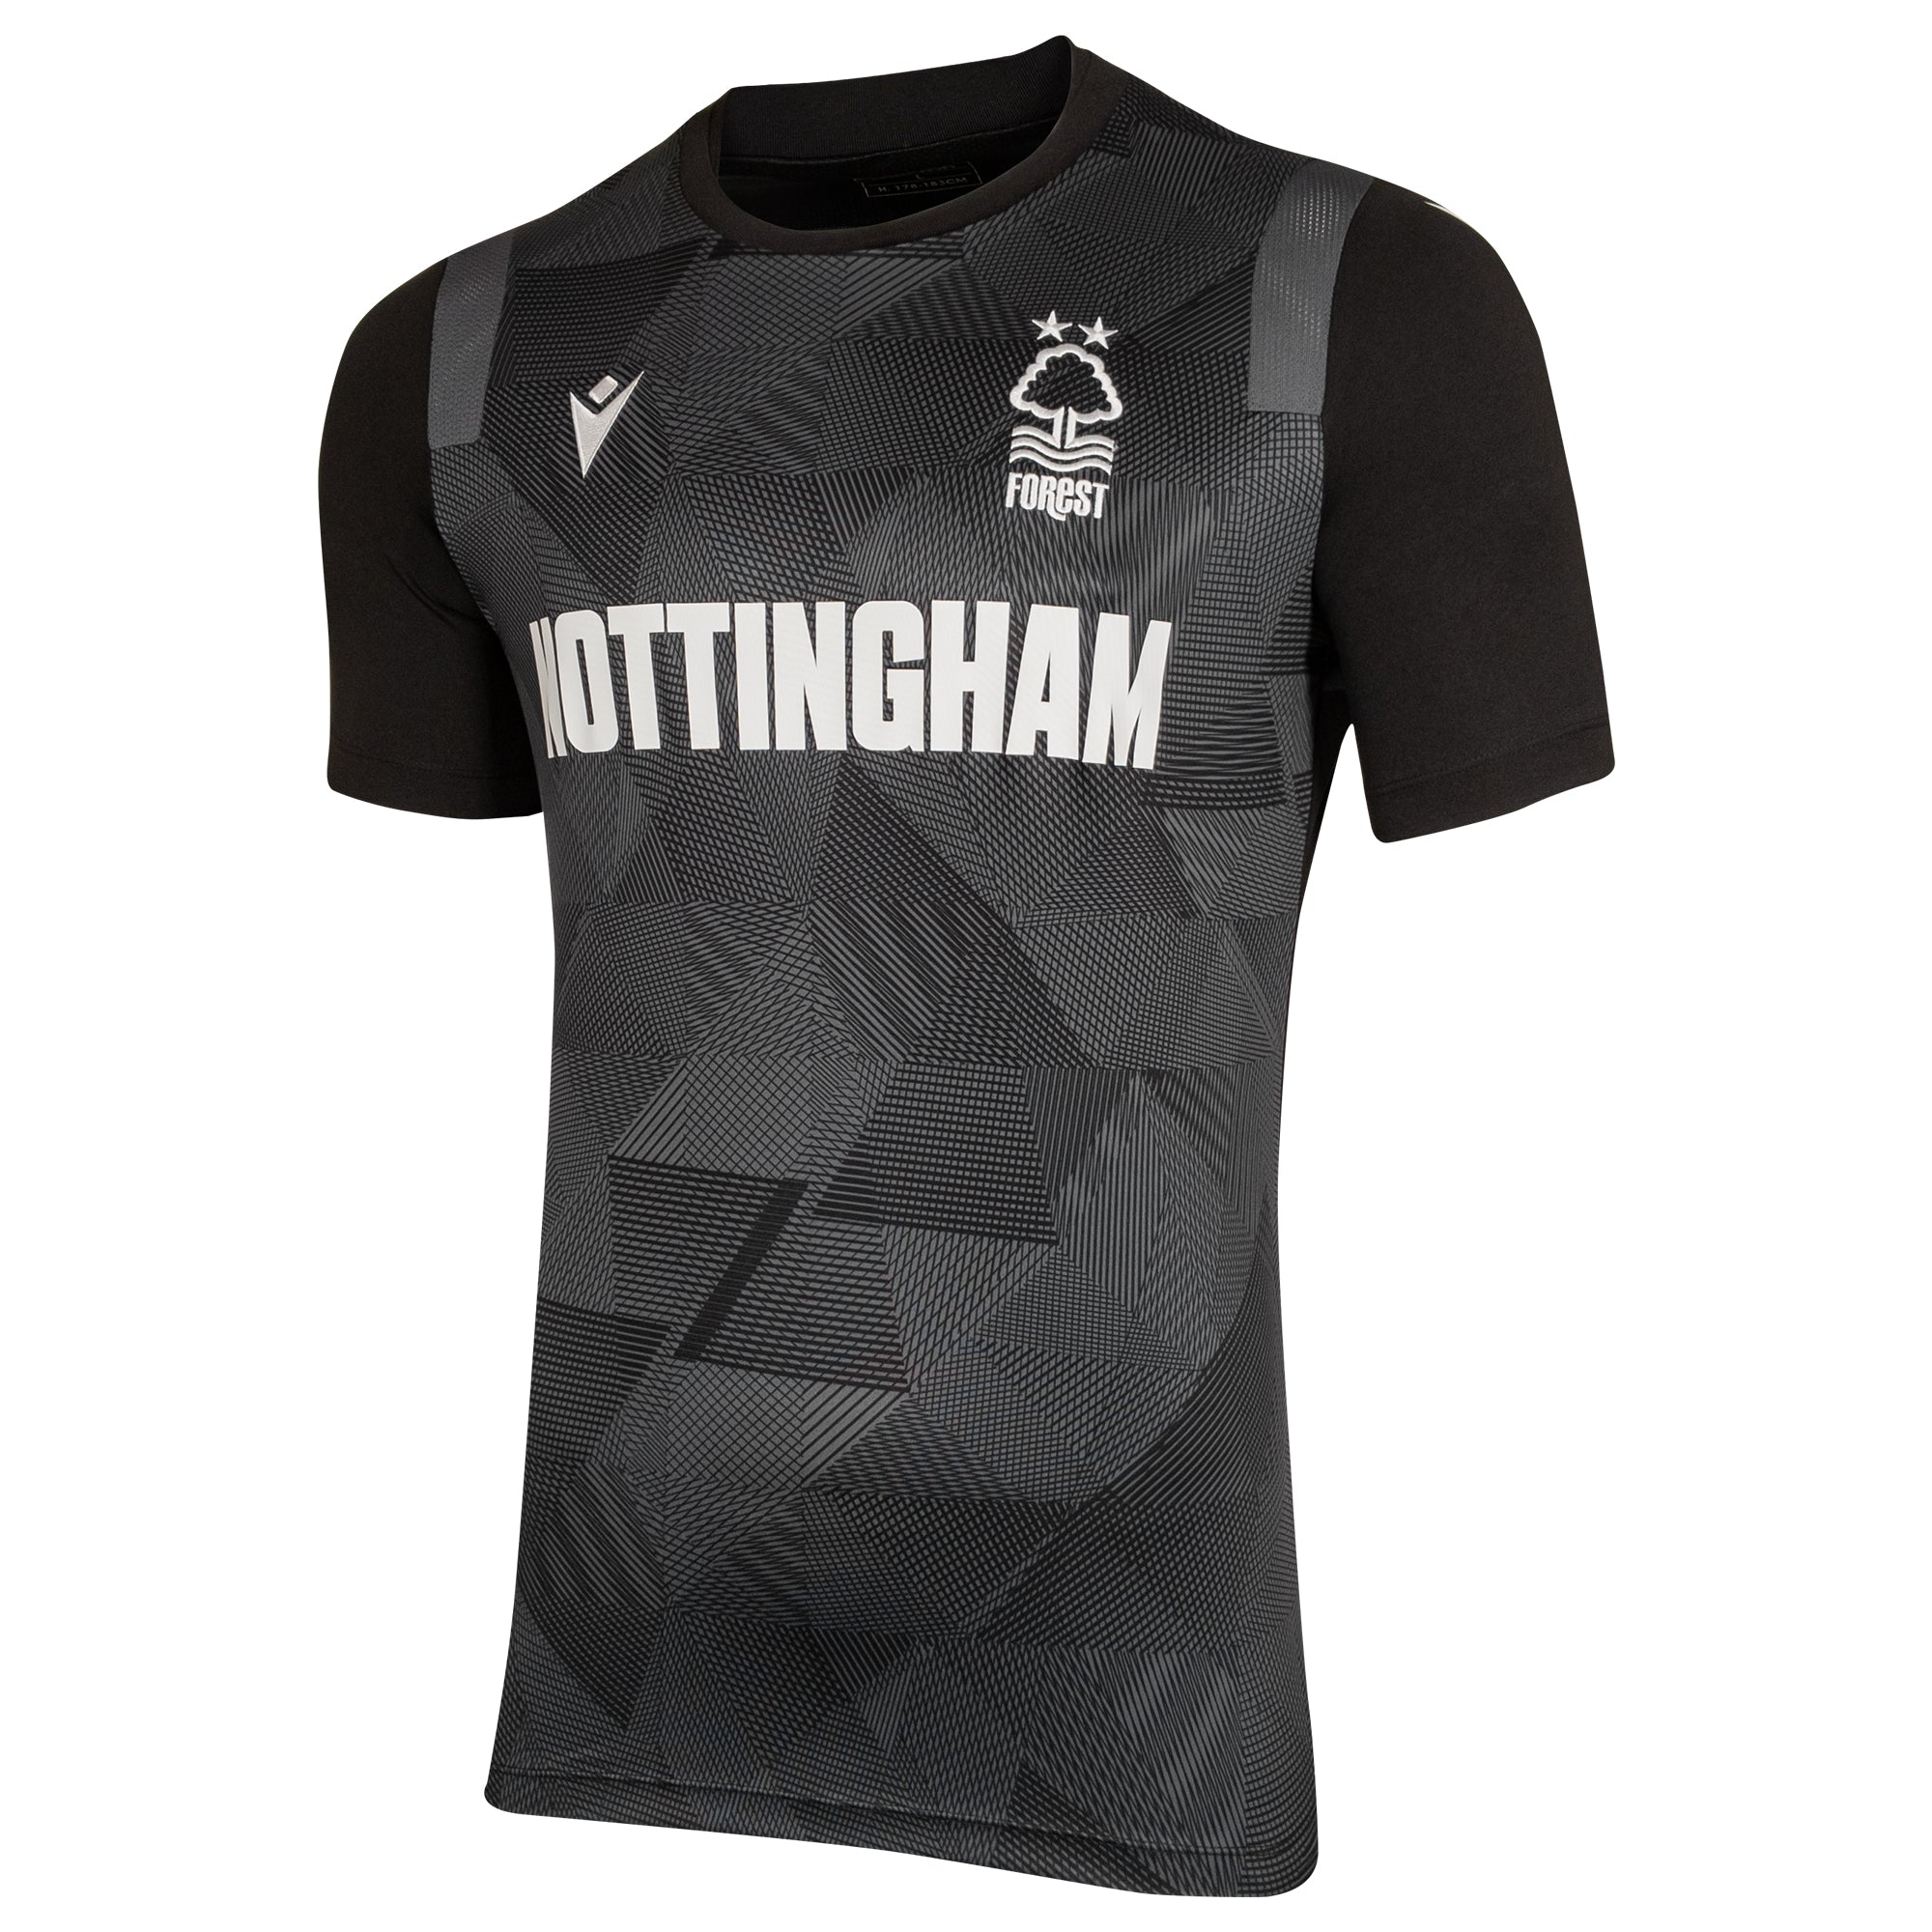 NFFC Mens Black Nottingham Jersey